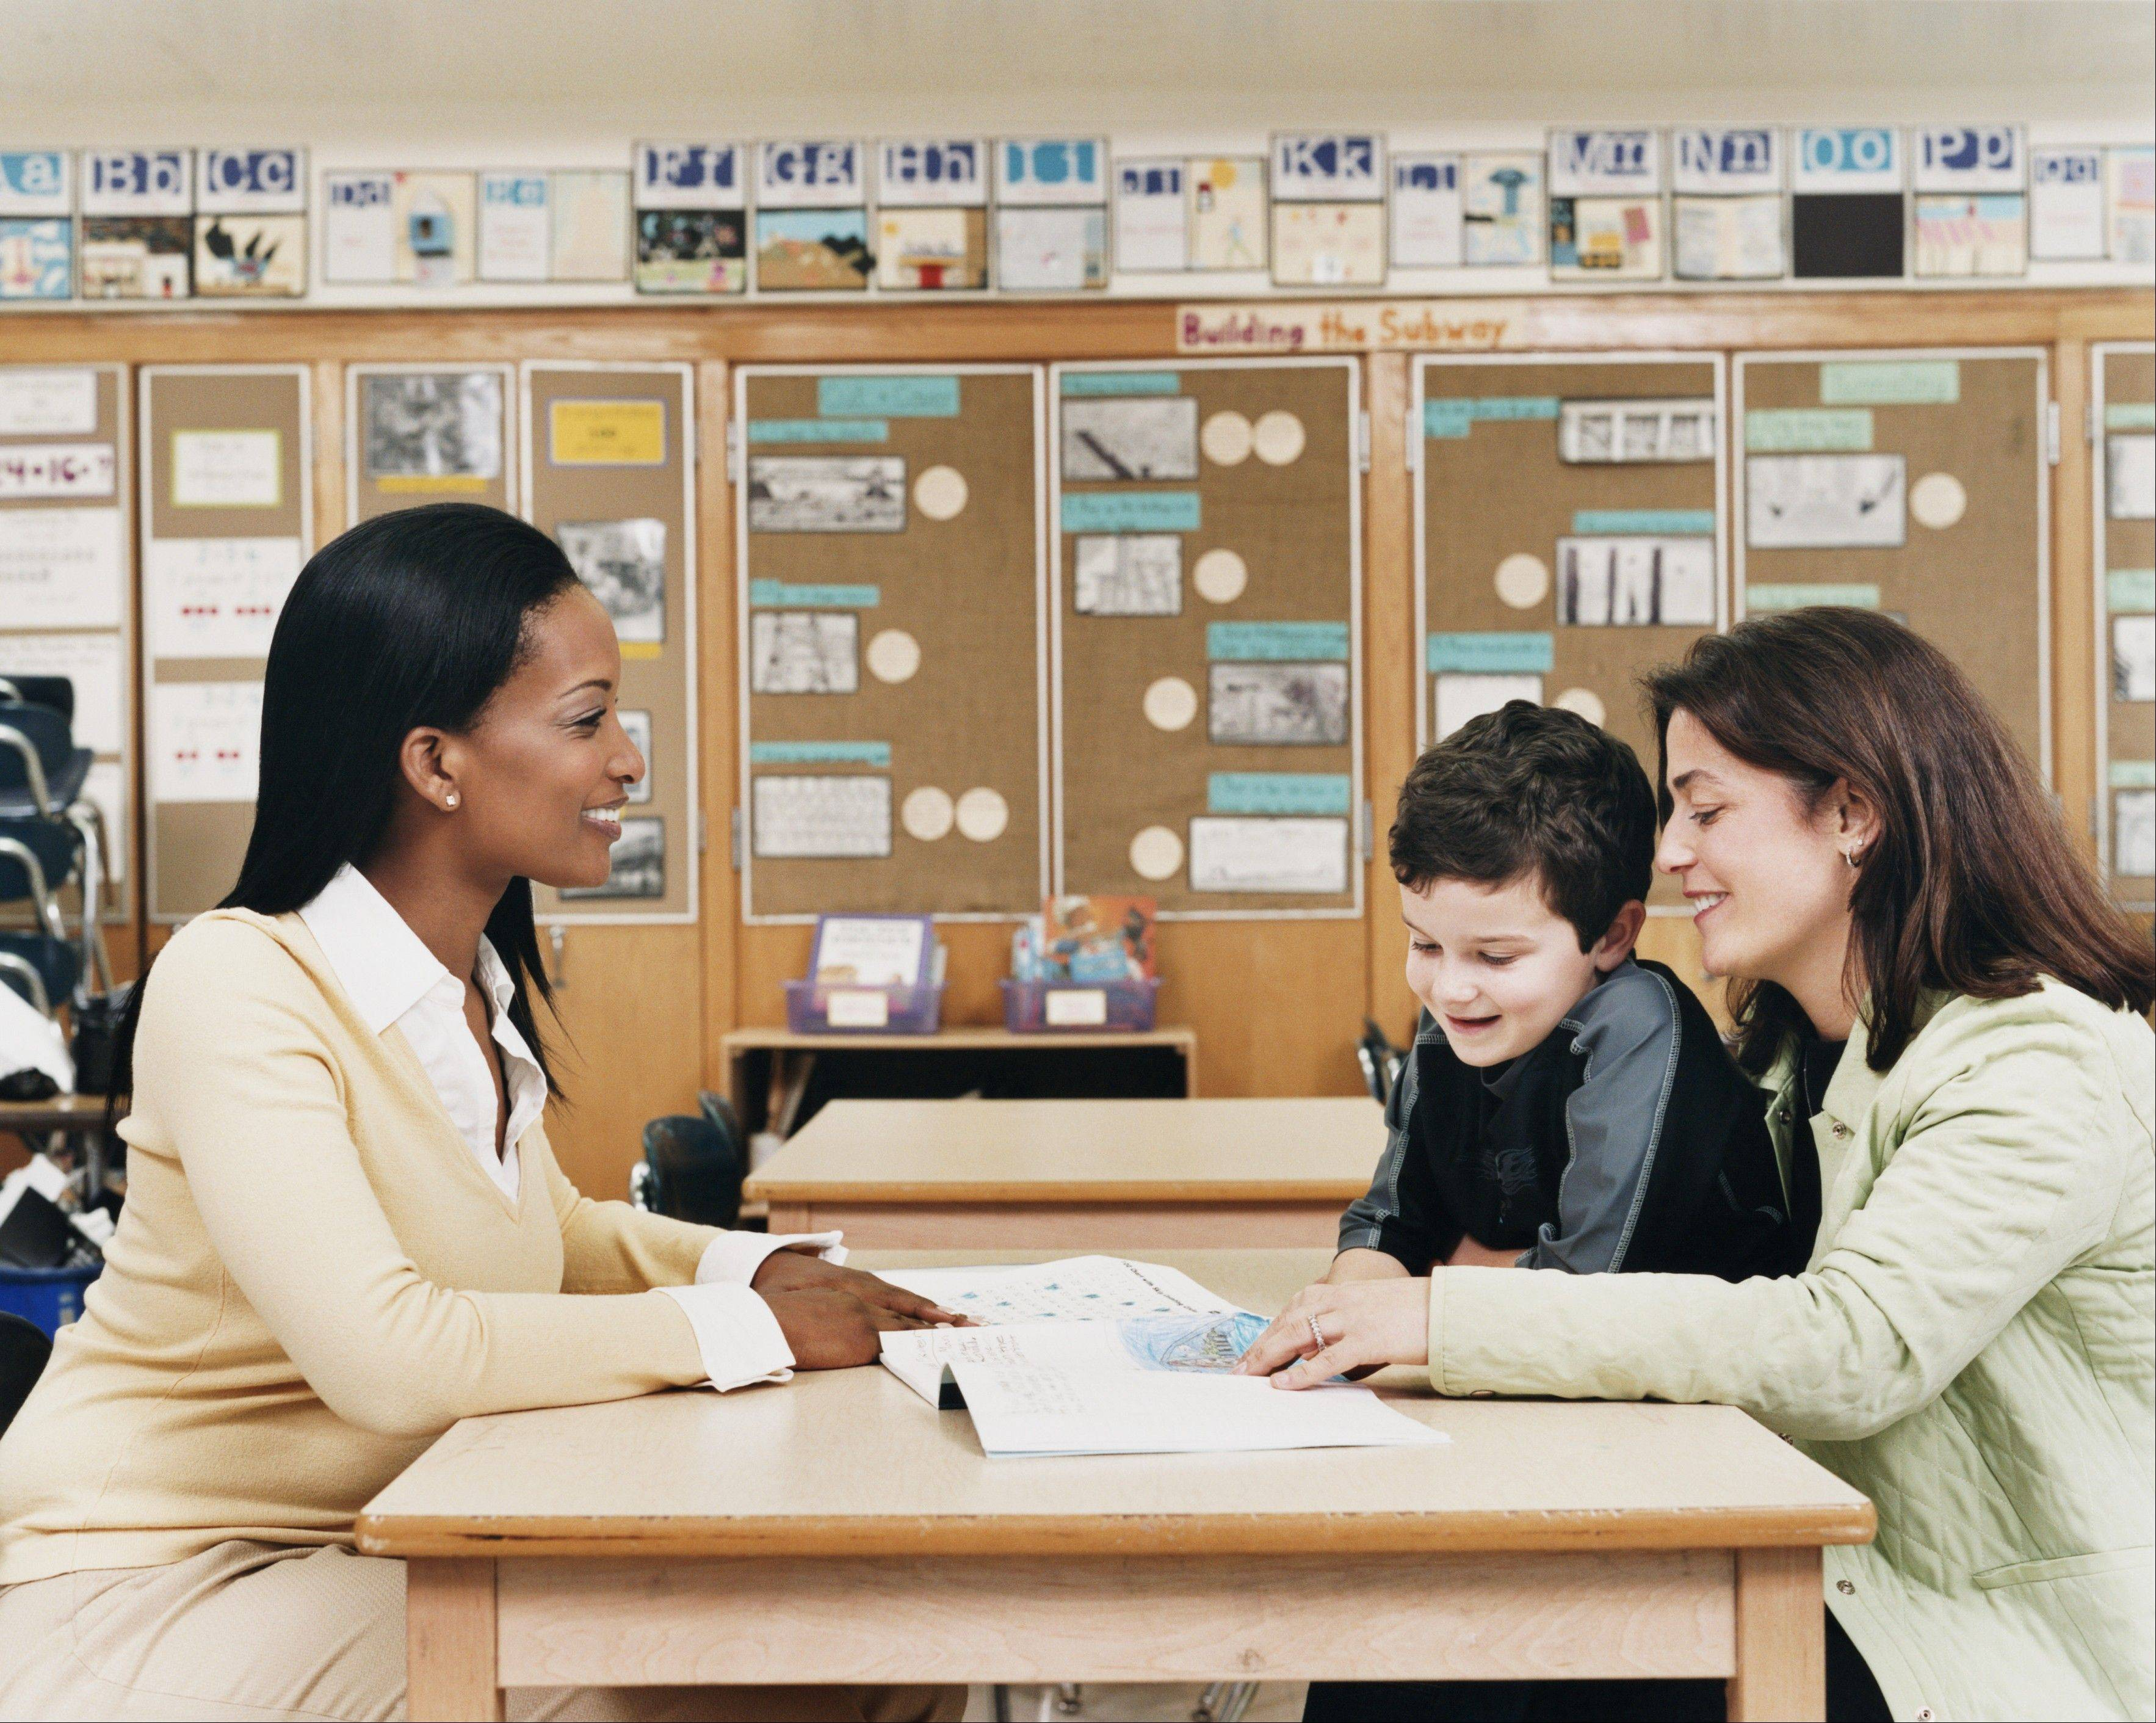 The first step to forging a good relationship with your child's teacher is to introduce yourself. Get to know them before issues arise.